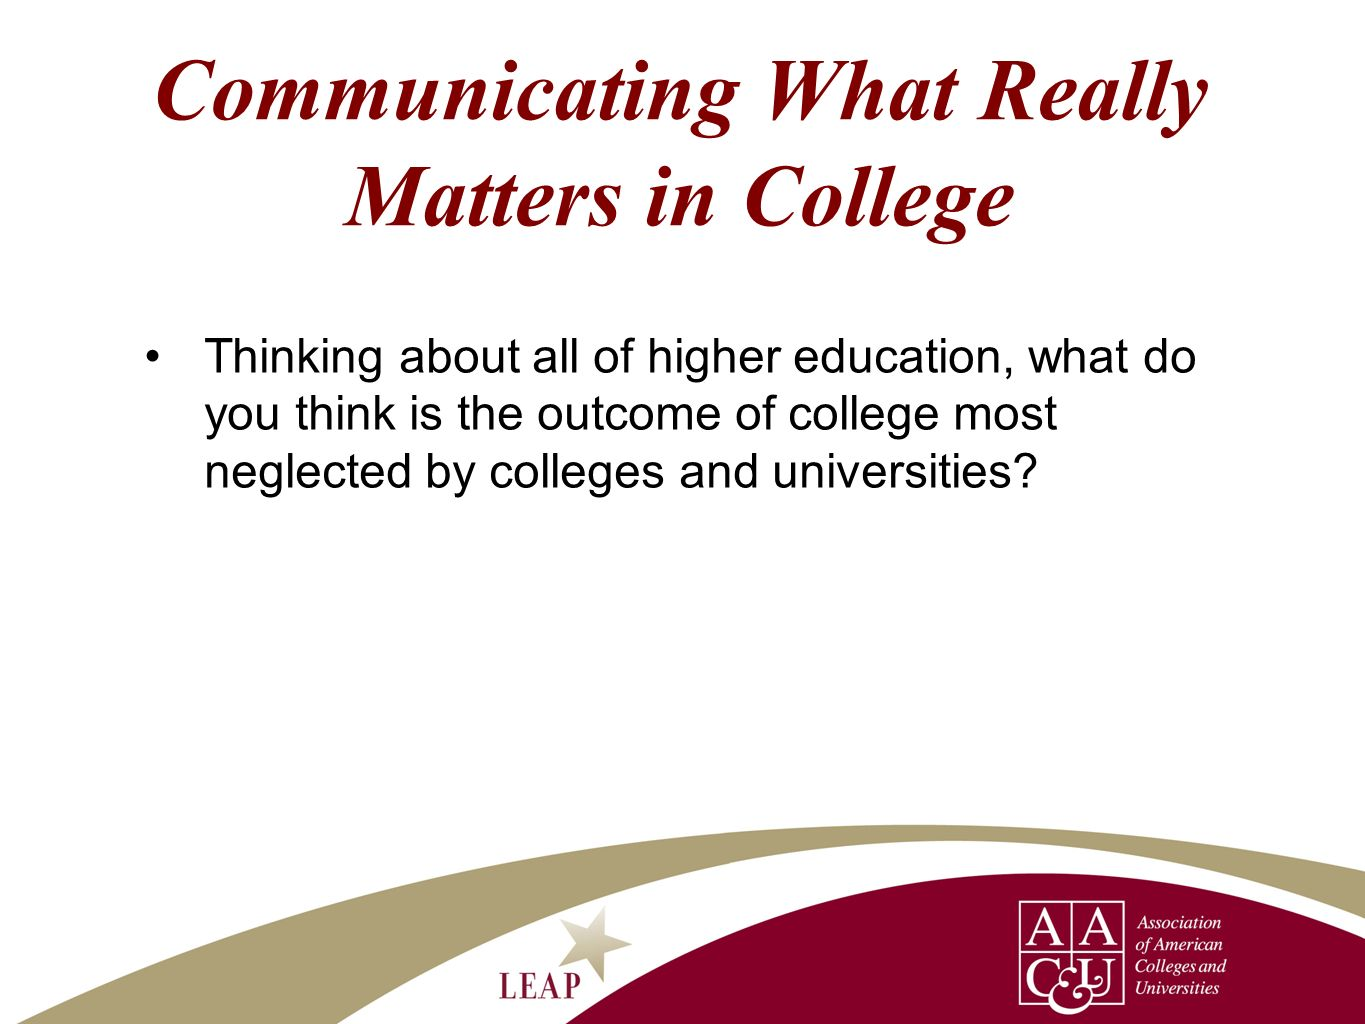 Communicating What Really Matters in College